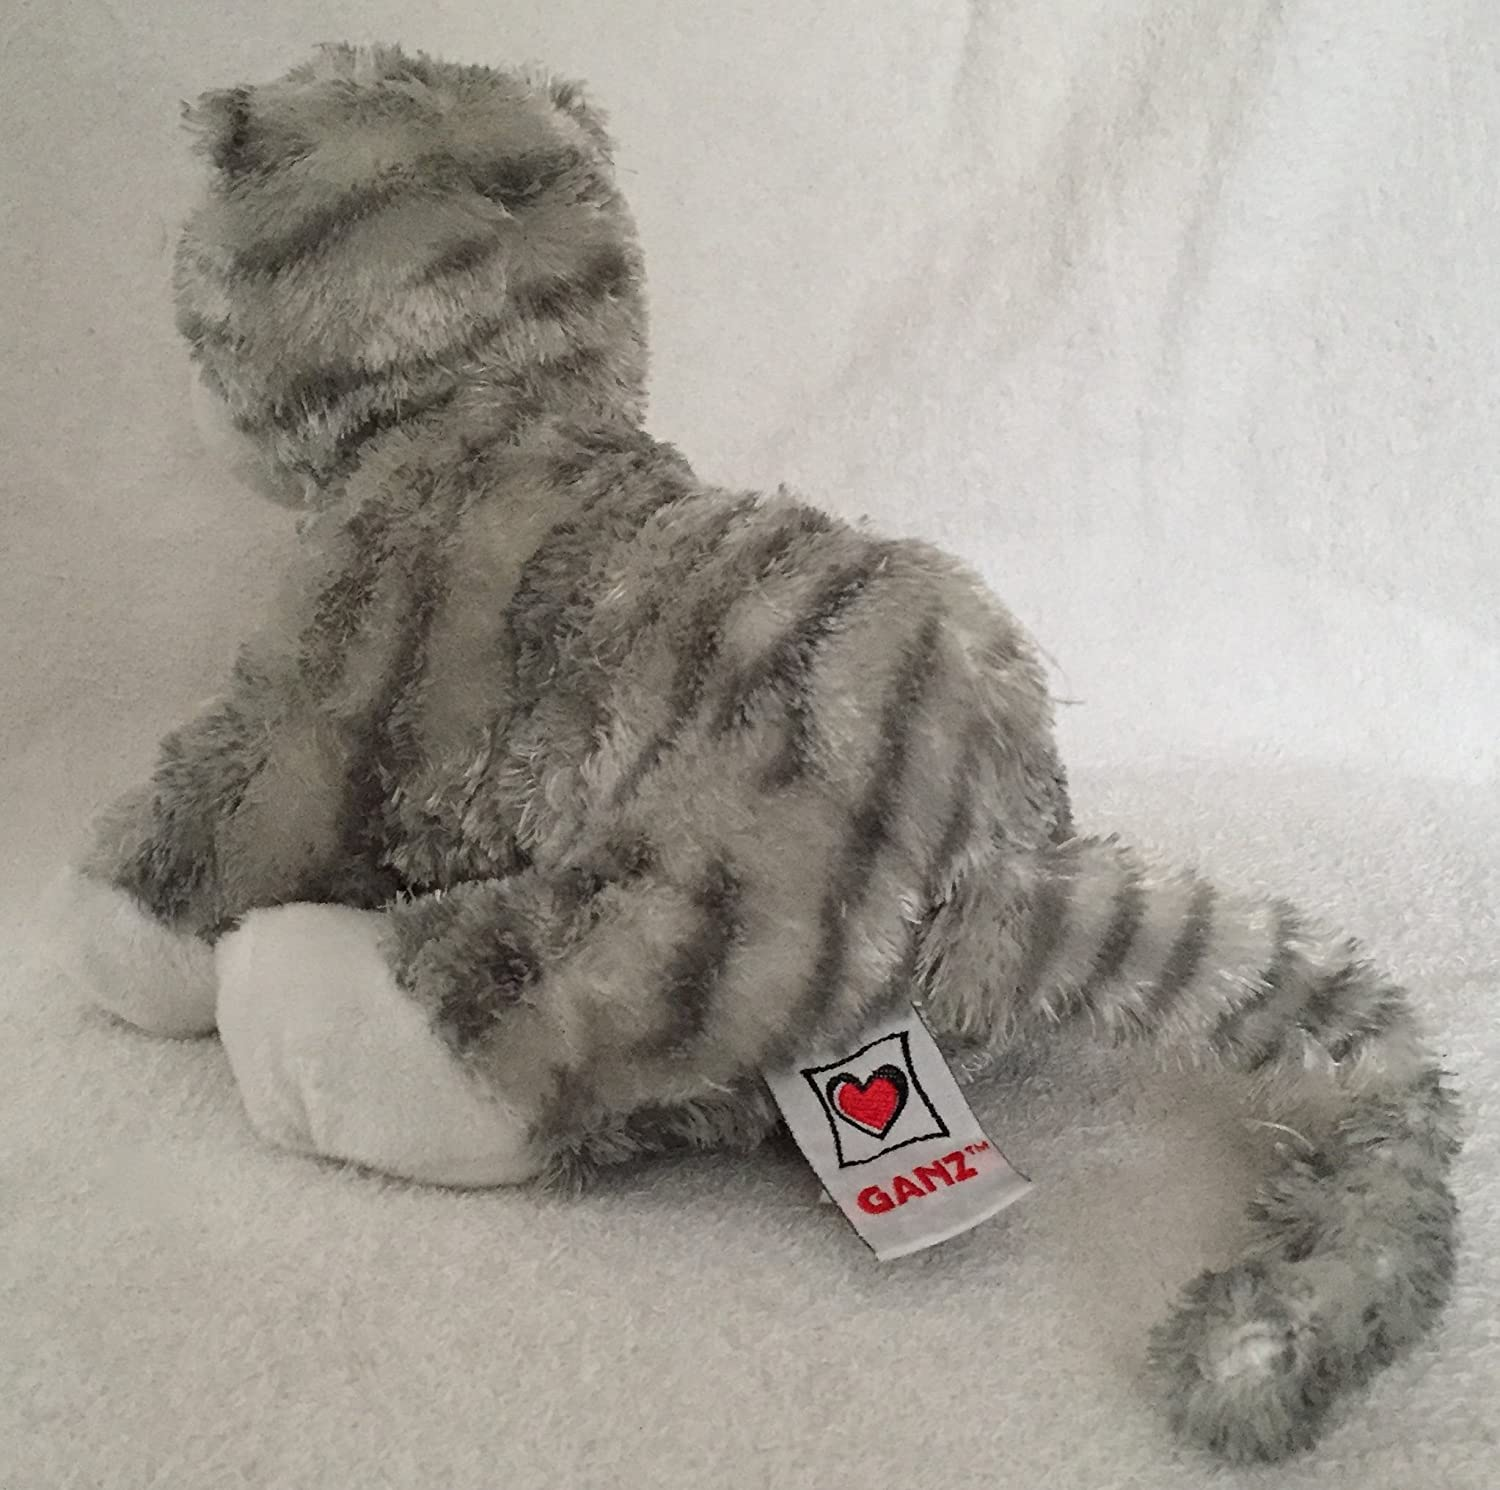 Amazon.com: Webkinz Plush Stuffed Animal Sterling Cheeky Cat: Toys & Games